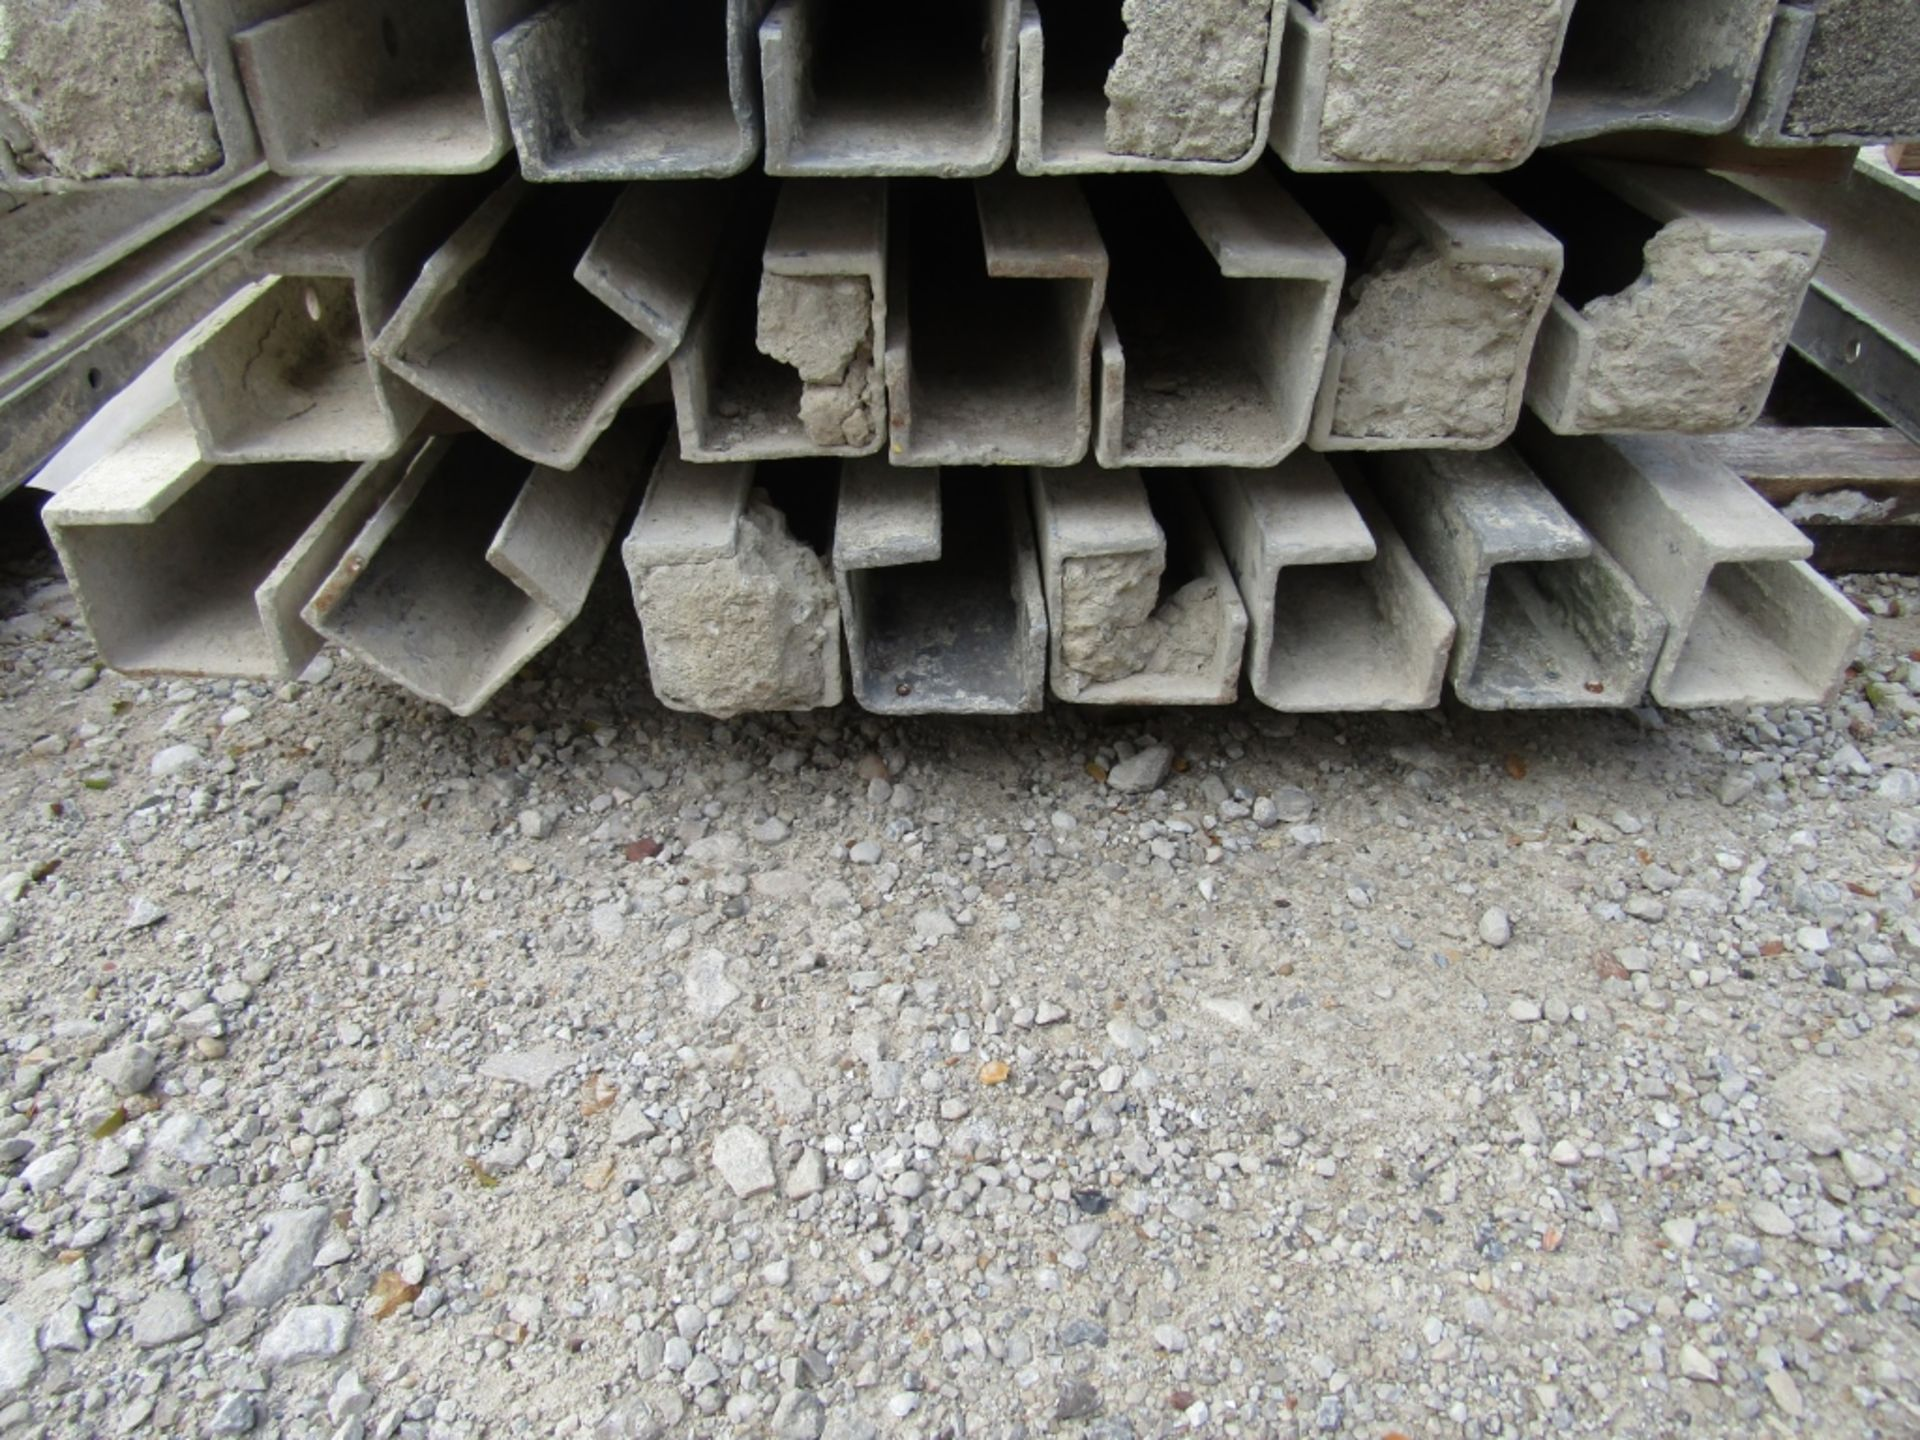 """(15) 4"""" x 4"""" x 8' Durand Concrete Forms, Inside Corners, Smooth 6-12 Hole Pattern, Full - Image 3 of 3"""